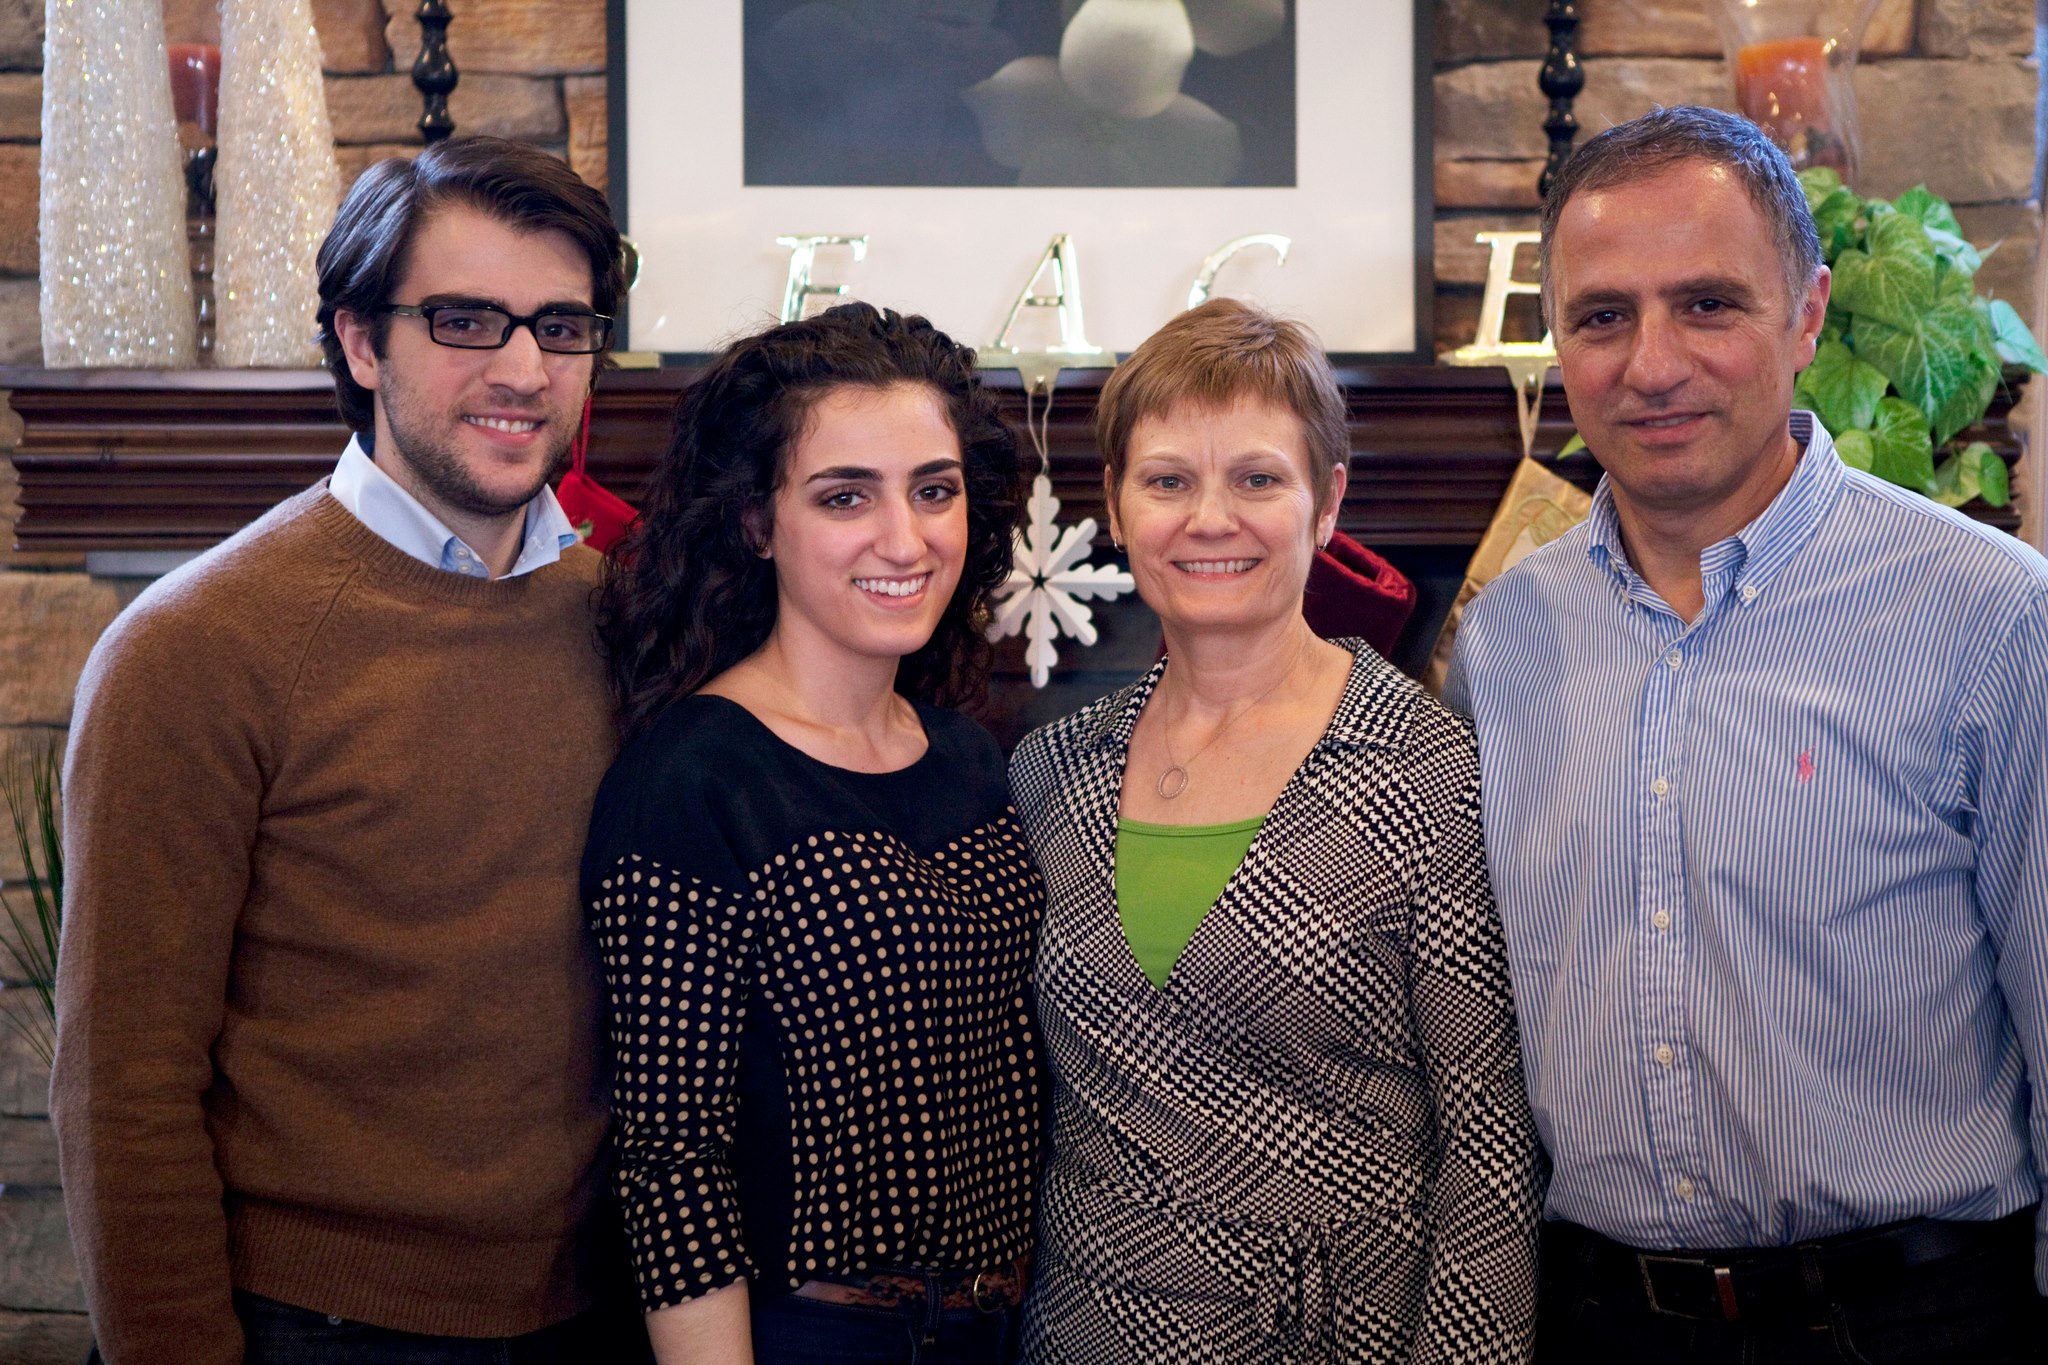 Habbeb Habeeb, his wife Joy, son Paul, and daughter Hannah